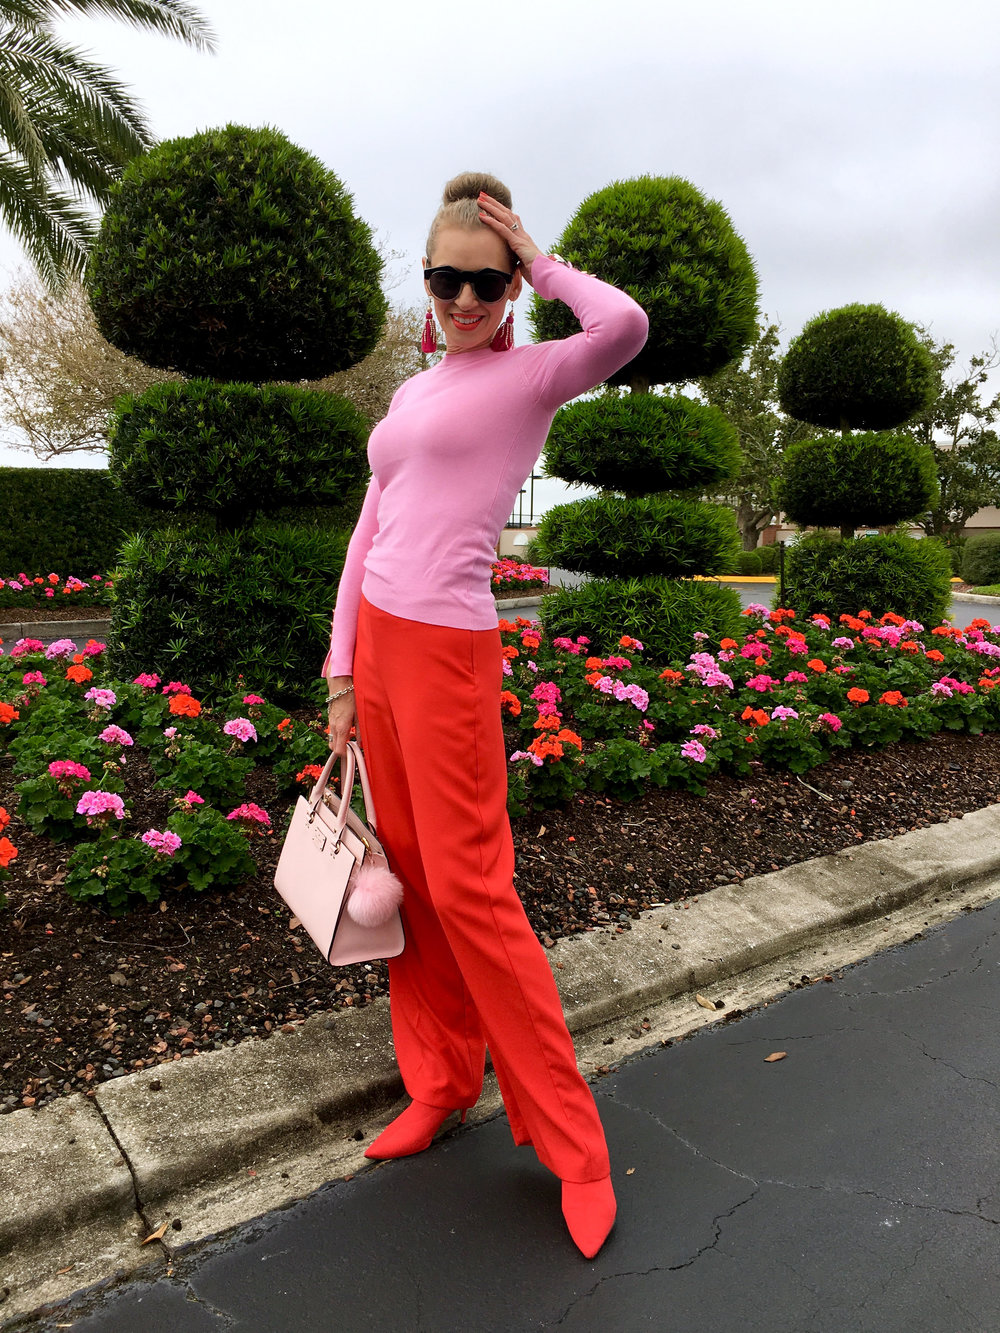 Apeing the topiary in River Island trousers with Zara sweater and boots and Kate Spade purse, Tara Golf and Country Club